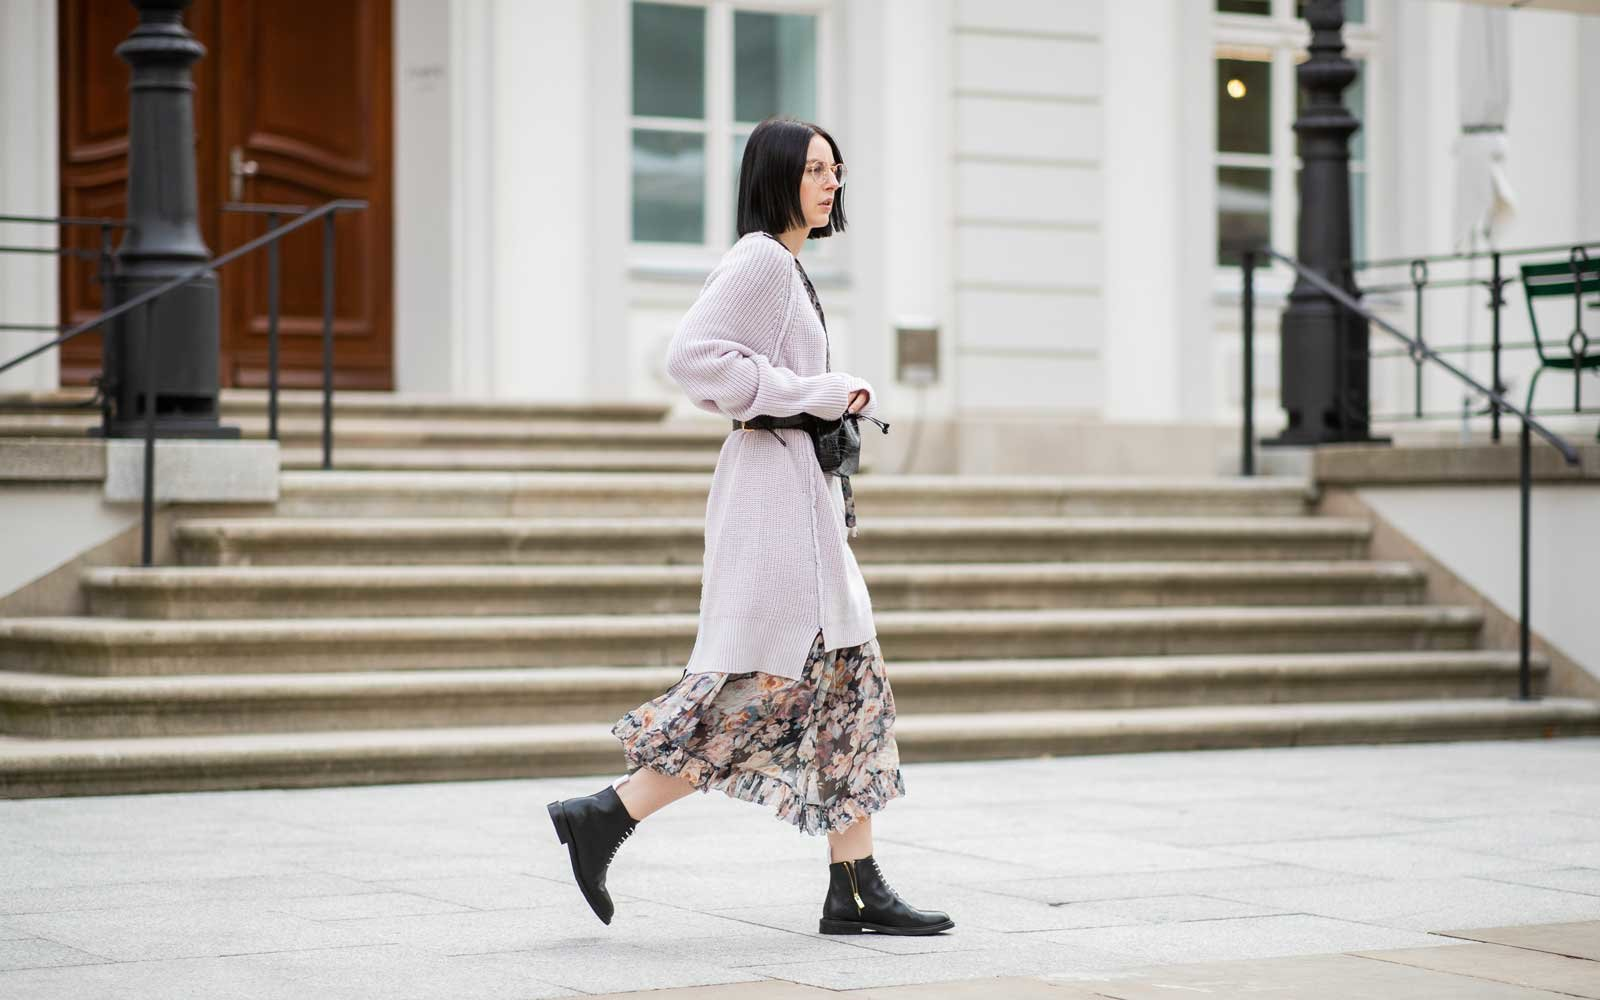 This Fall Fashion Trend Is Actually a Super Smart Packing Hack